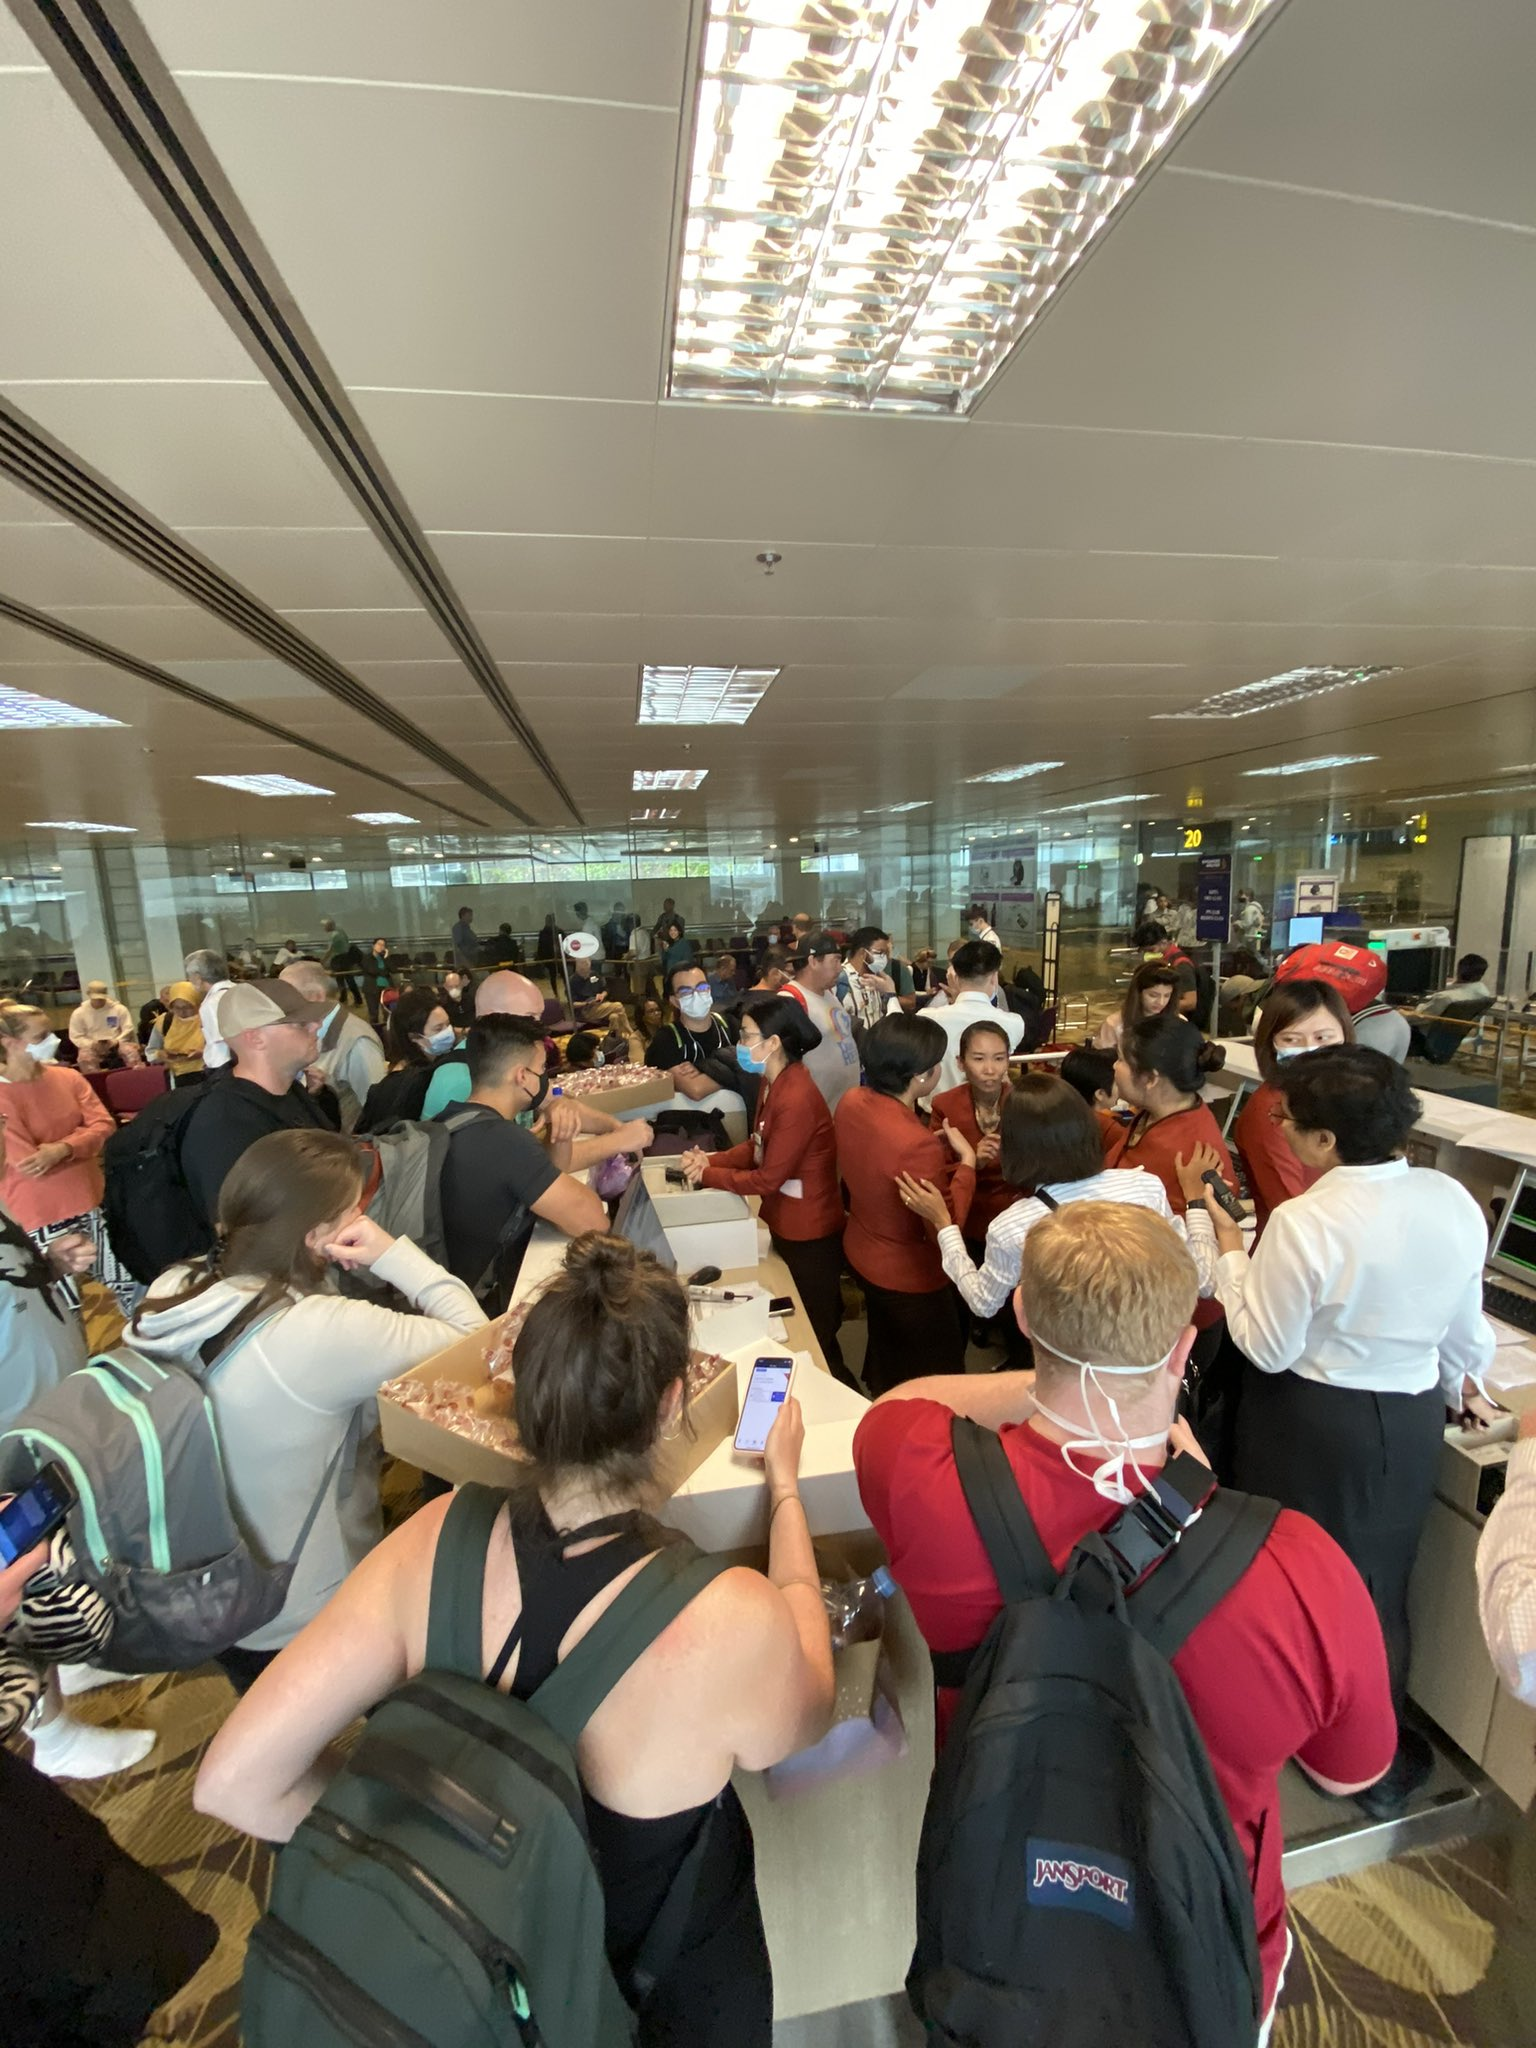 Singapore welcomed flights filled with European tourists this month, its first in roughly 1 1/2 years.